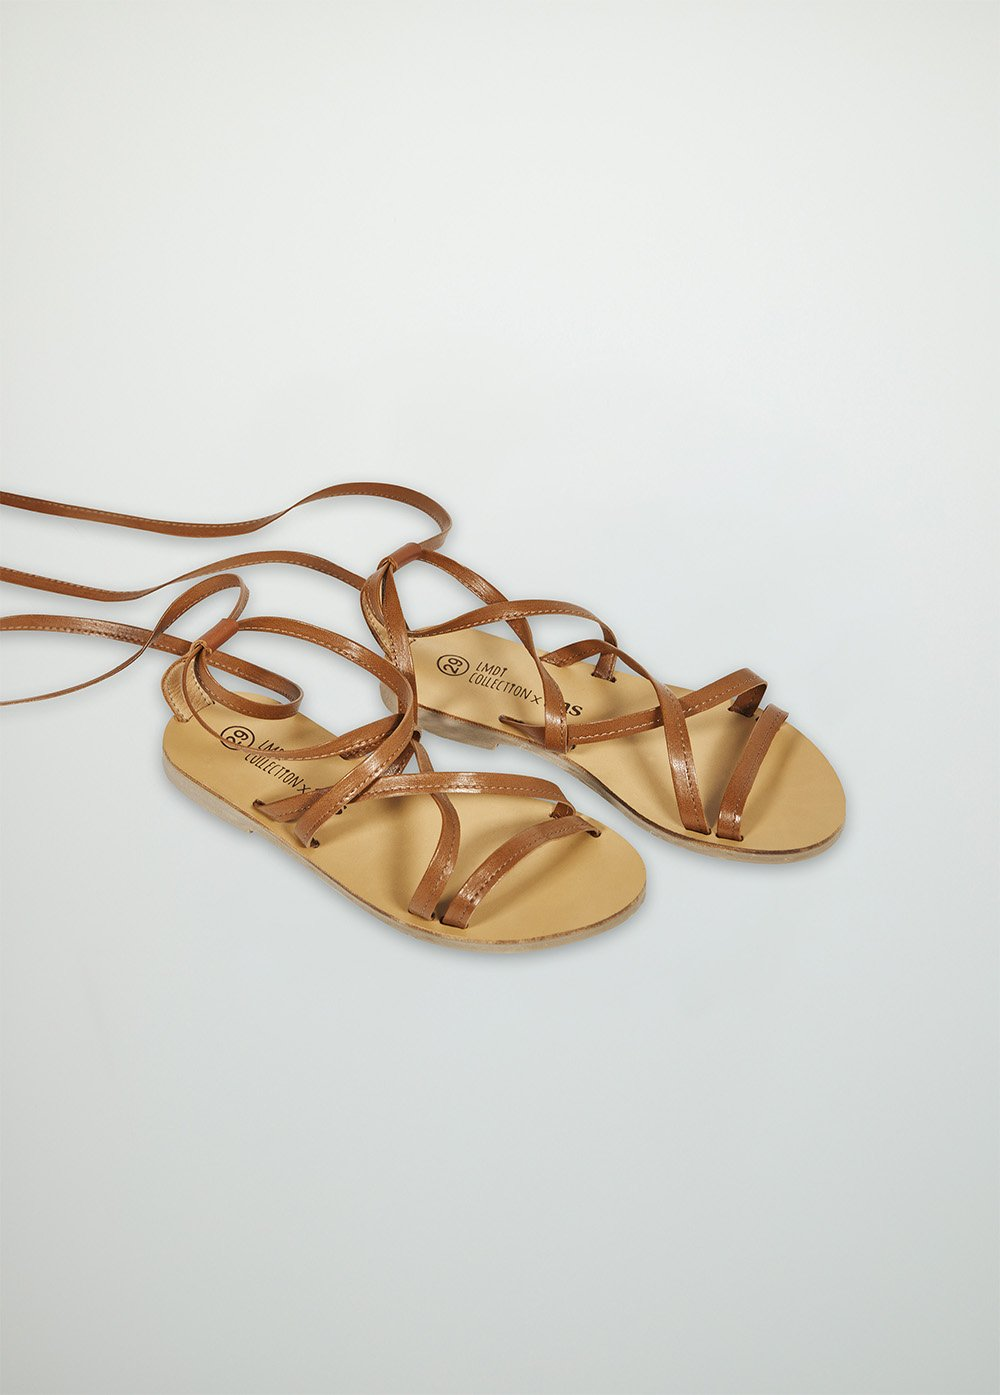 The New Society Roma Sandal - Camel